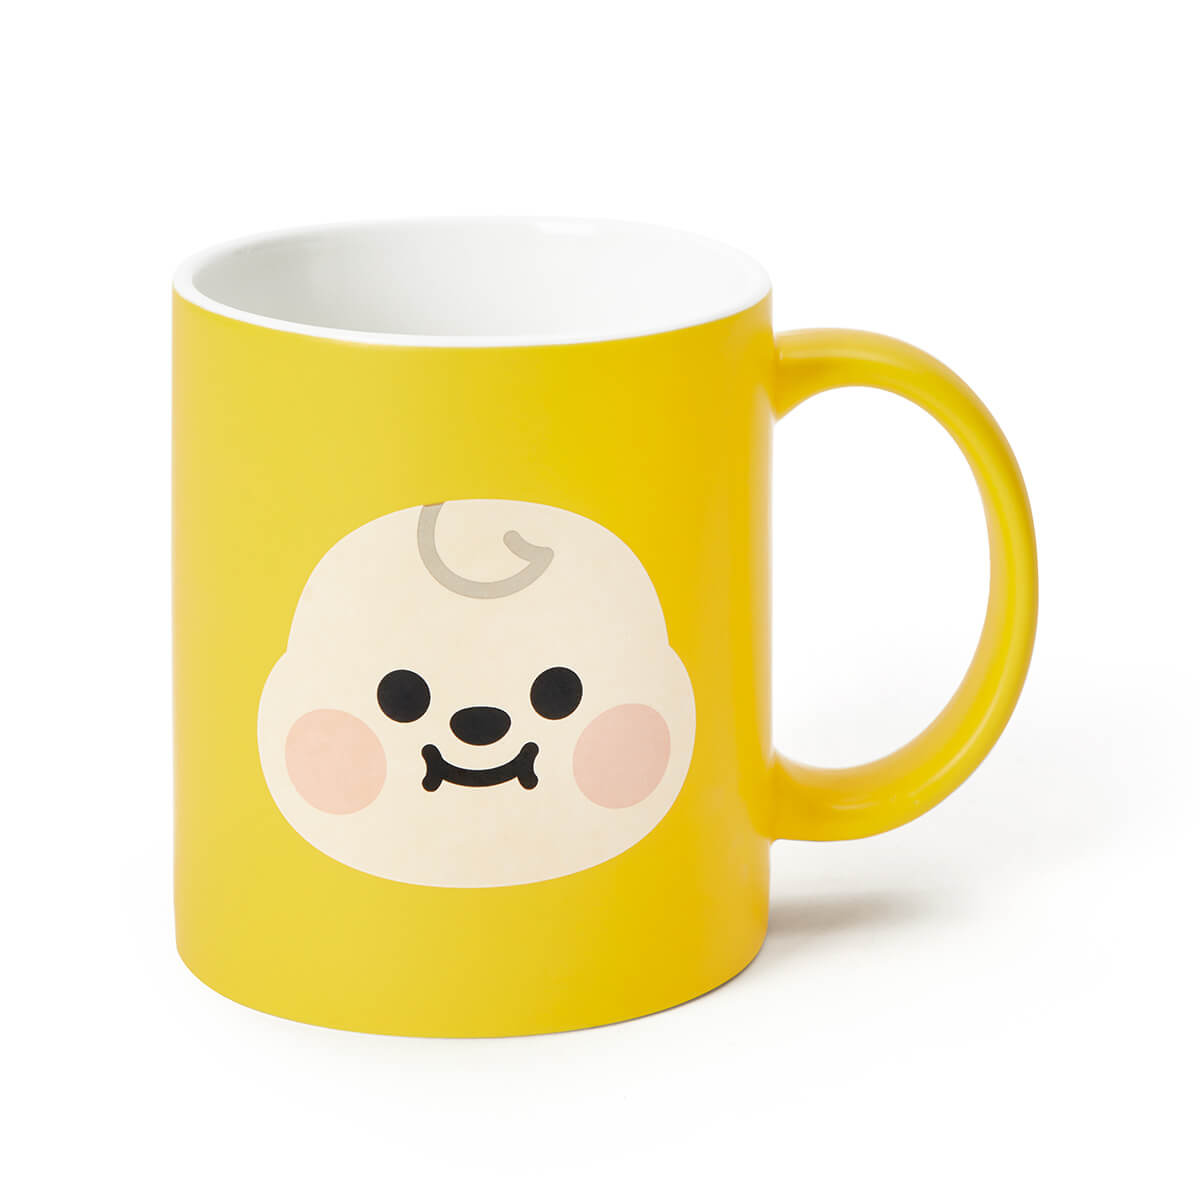 BT21 CHIMMY 20 BABY CERAMIC MUG